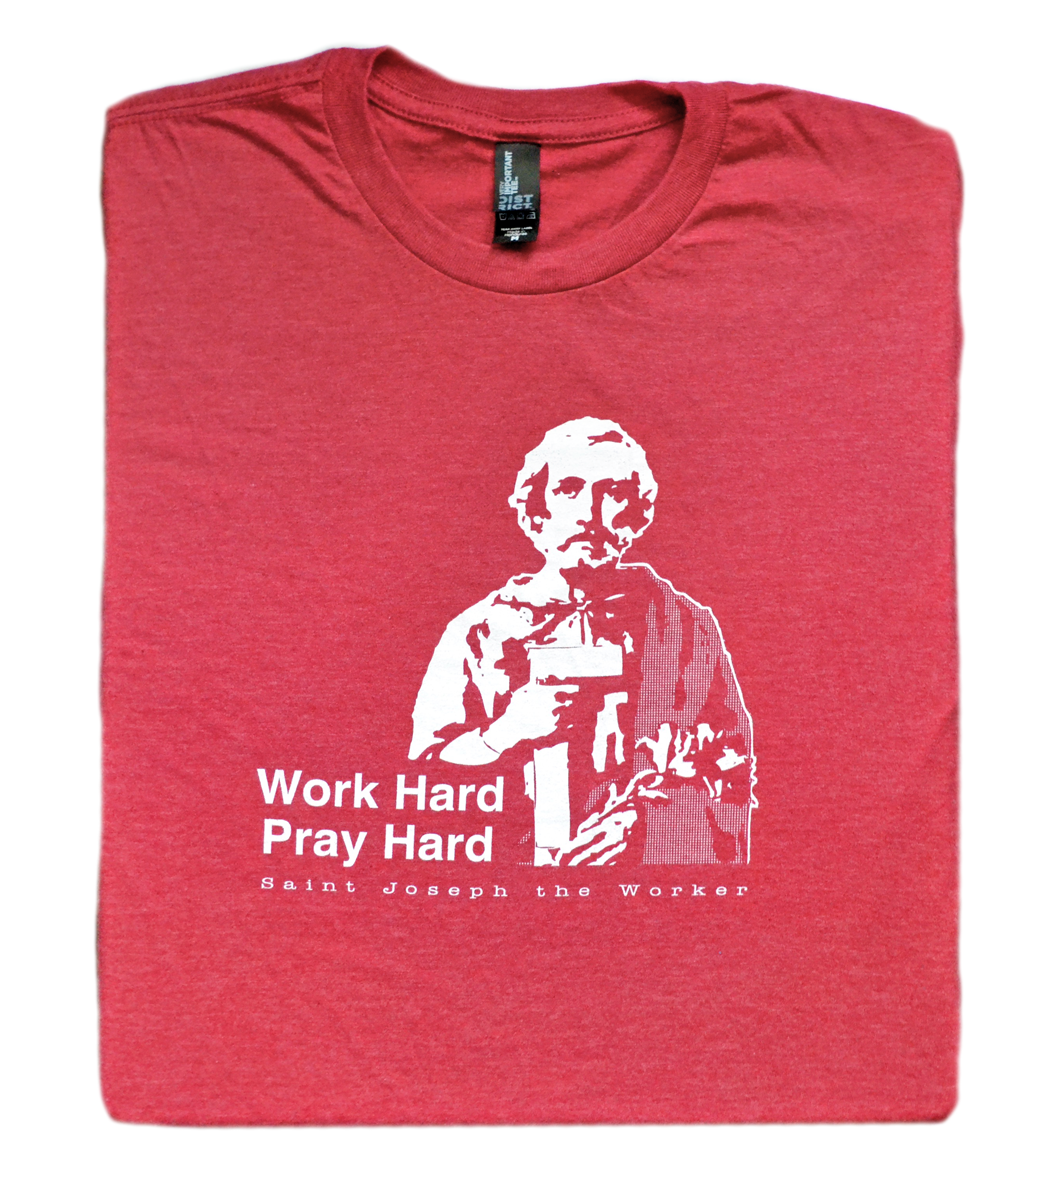 Bona Fide Work Ethic - St. Joseph the Worker T Shirt  © - That One Sheep